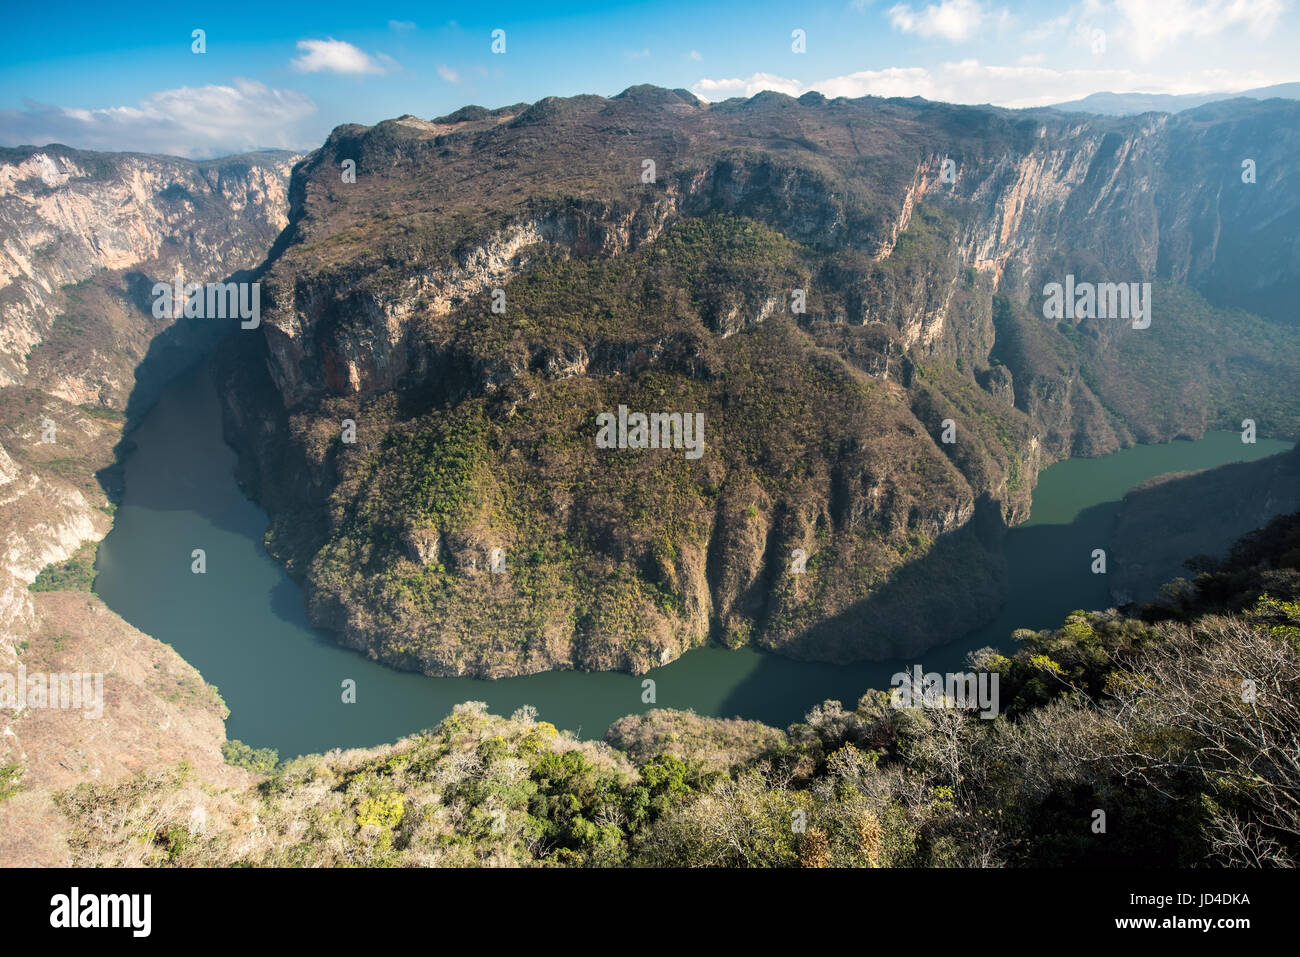 View from above the Sumidero Canyon - Chiapas, Mexico - Stock Image